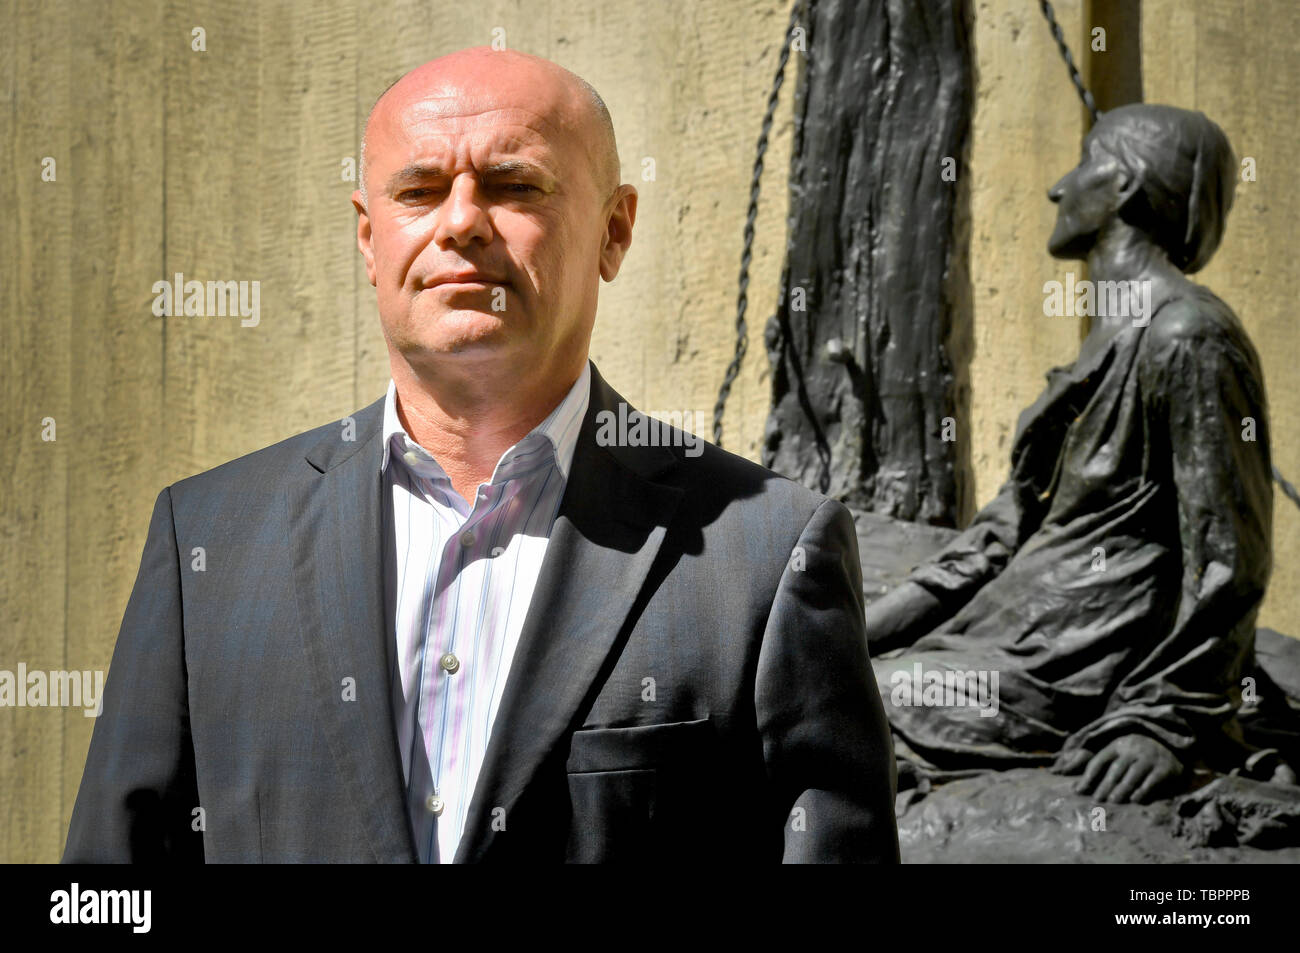 Prague, Czech Republic. 03rd June, 2019. Ivan Moravek, acting head of the National Gallery Prague (NGP), poses for the photographer within a press conference on the current situation in the gallery, on June 3, 2019, in Prague, Czech Republic. Credit: Vit Simanek/CTK Photo/Alamy Live News Stock Photo